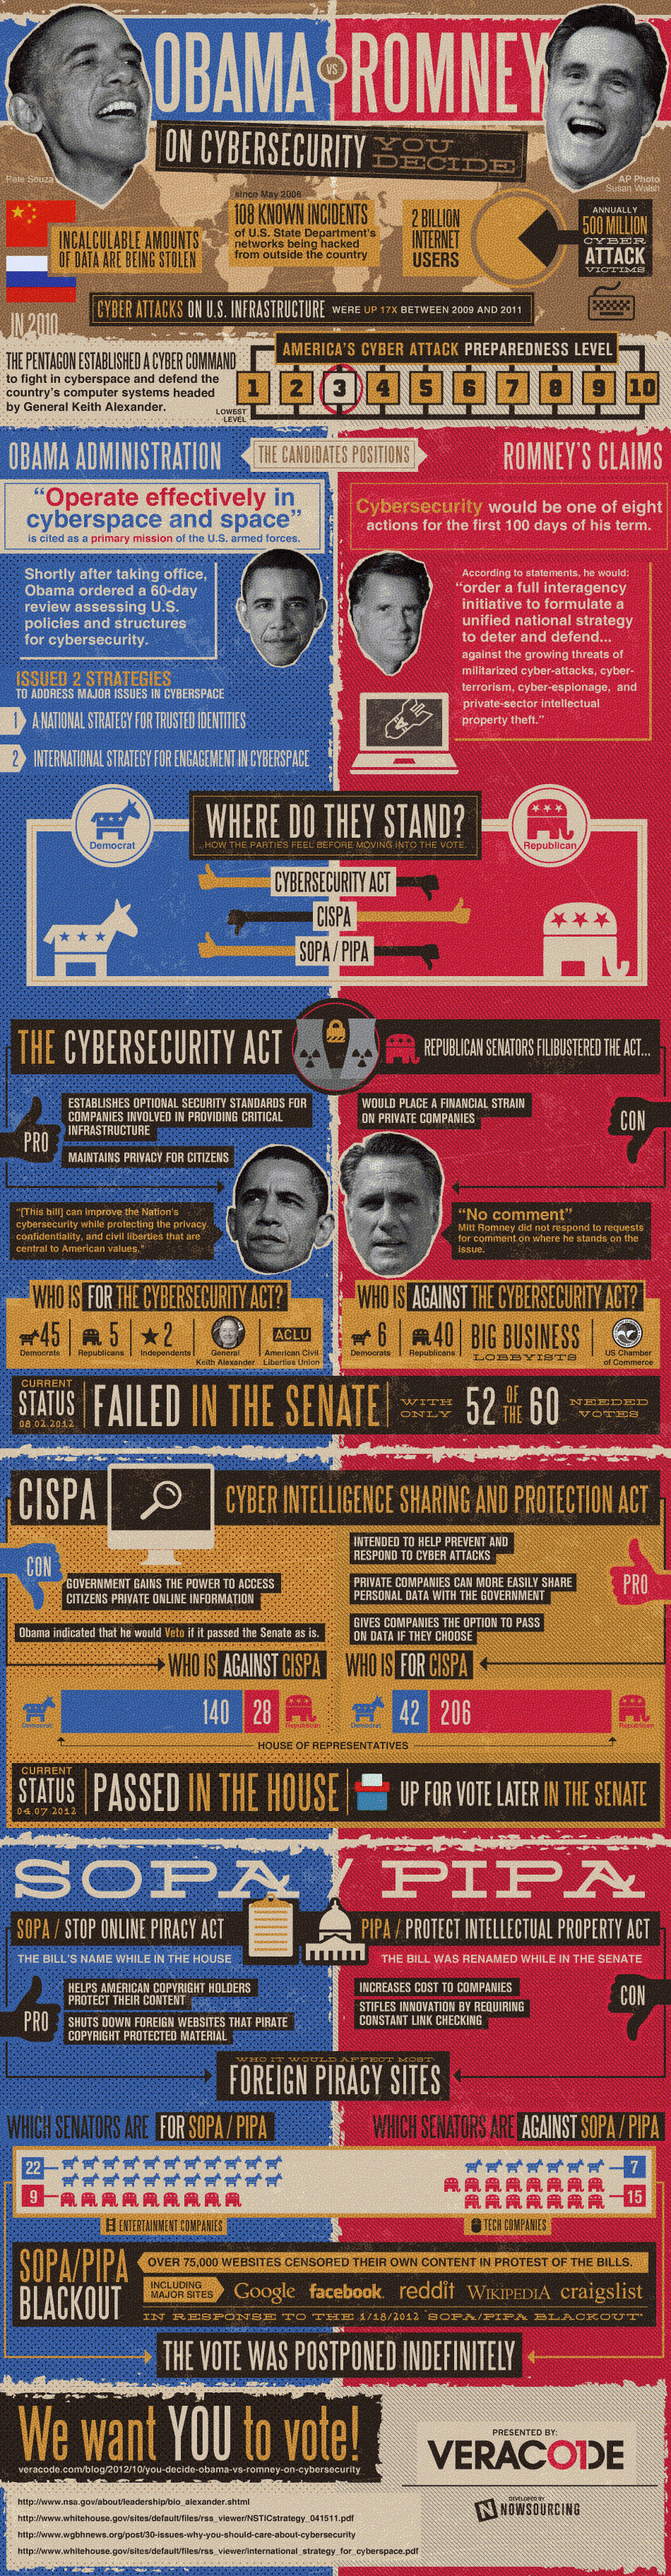 Obama vs. Romney On Cybersecurity [Infographic]